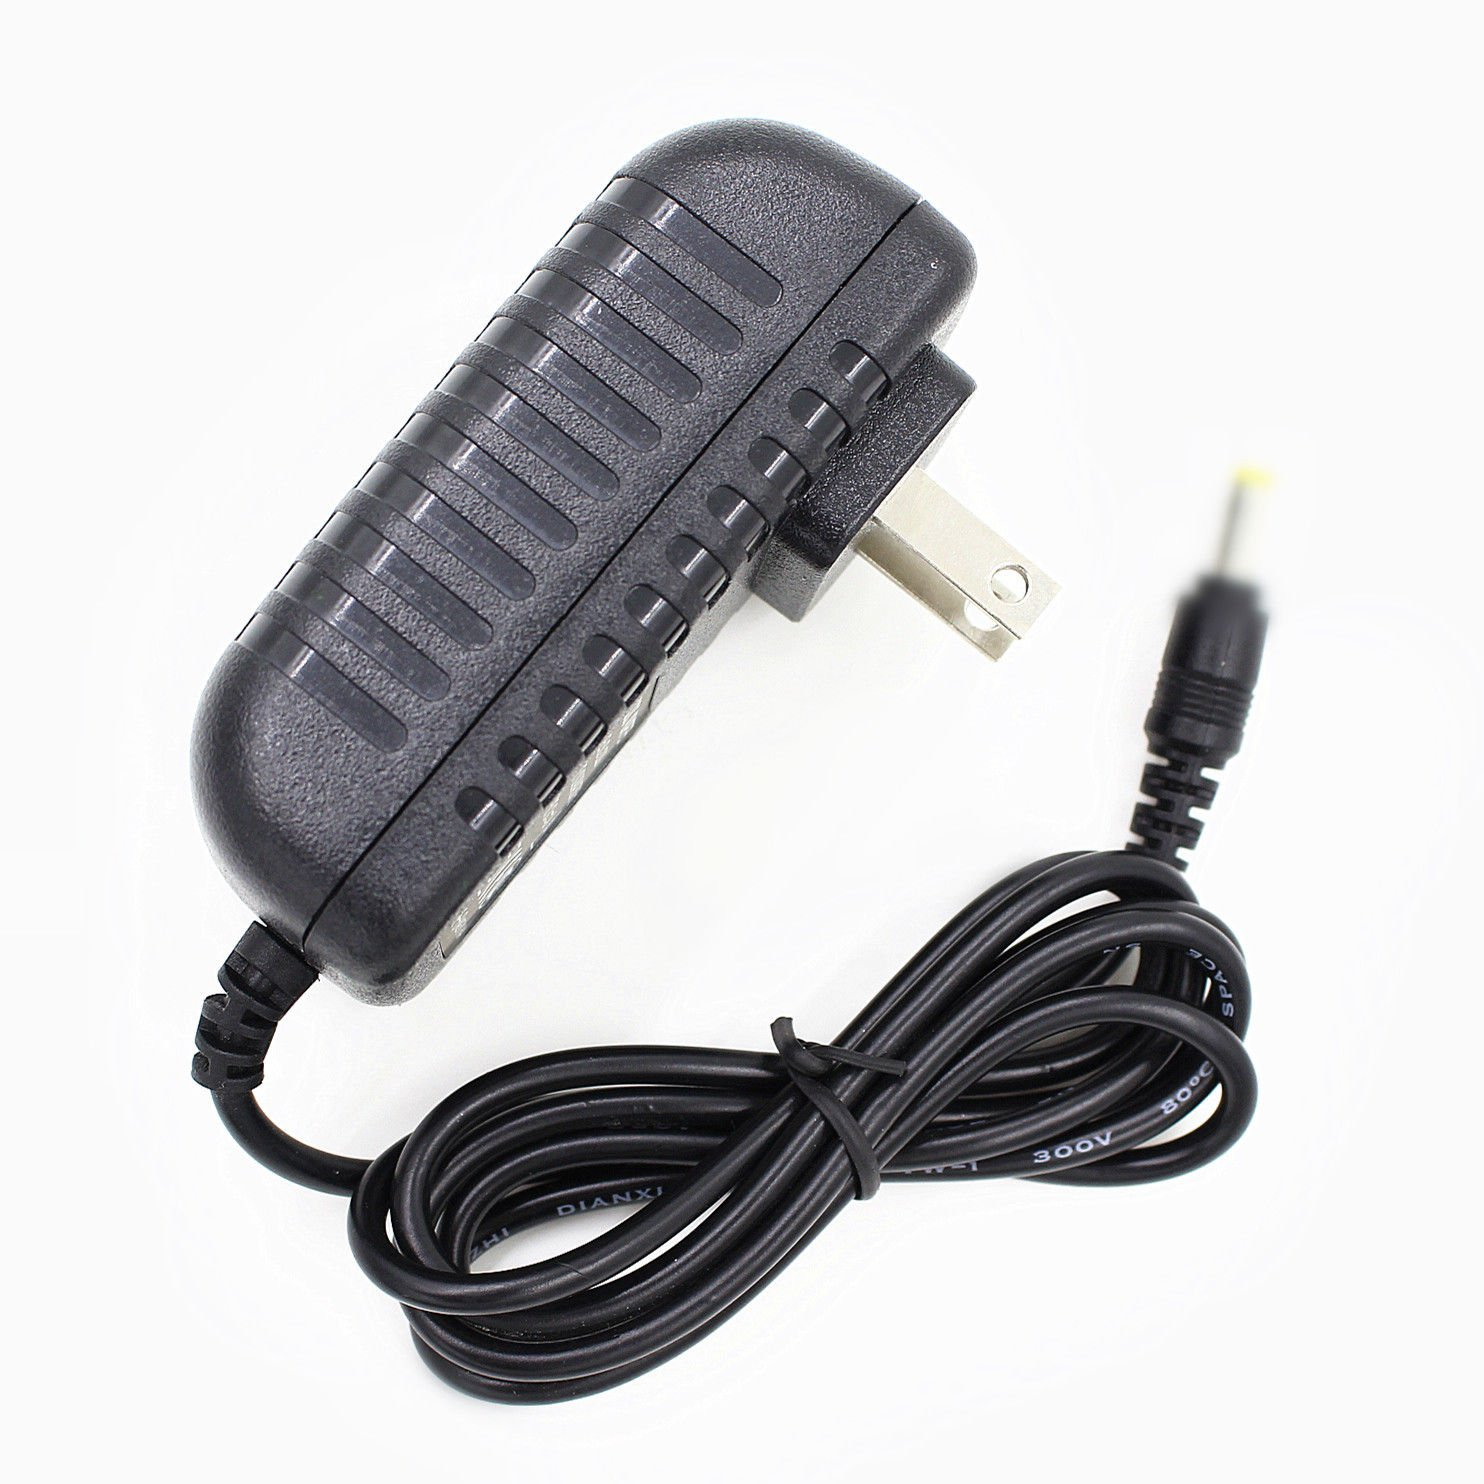 Us ac wall adapter power supply charger cord for yamaha for Yamaha pa150 keyboard ac power adapter